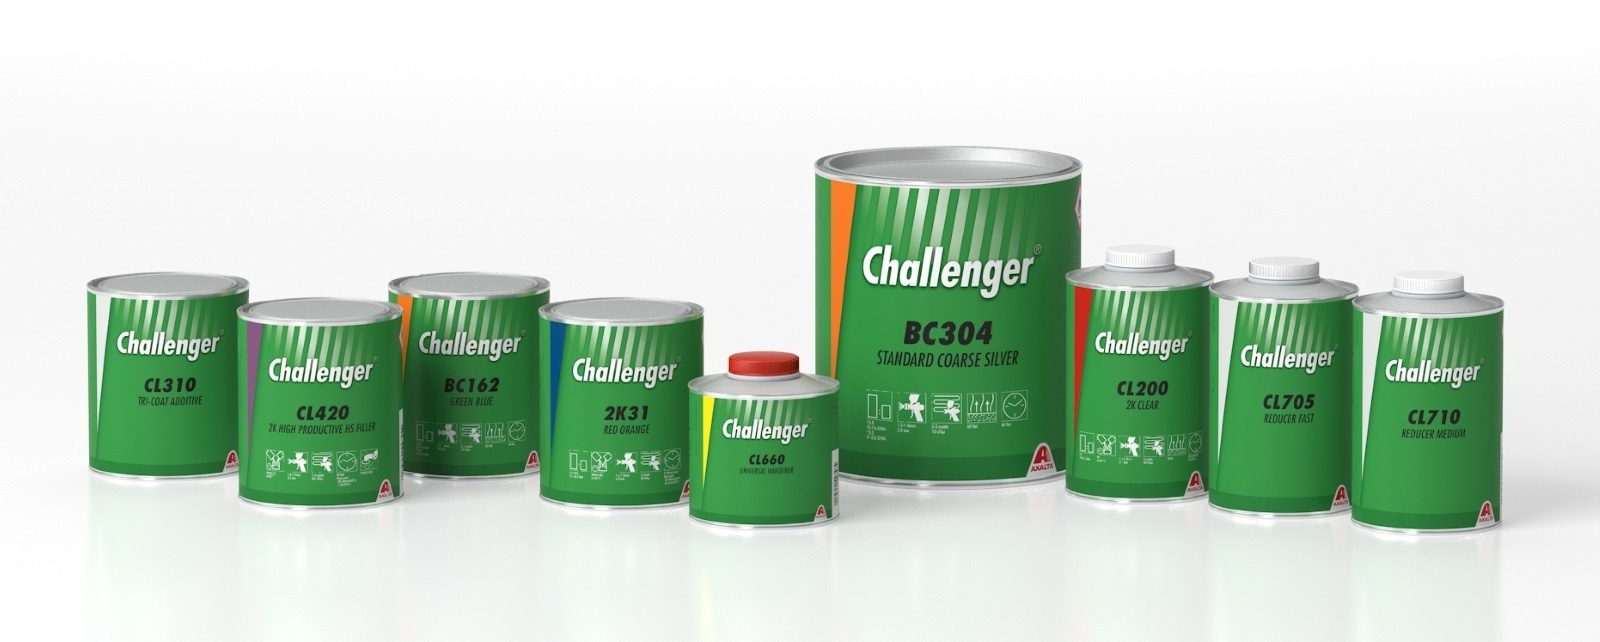 Image of challenger products